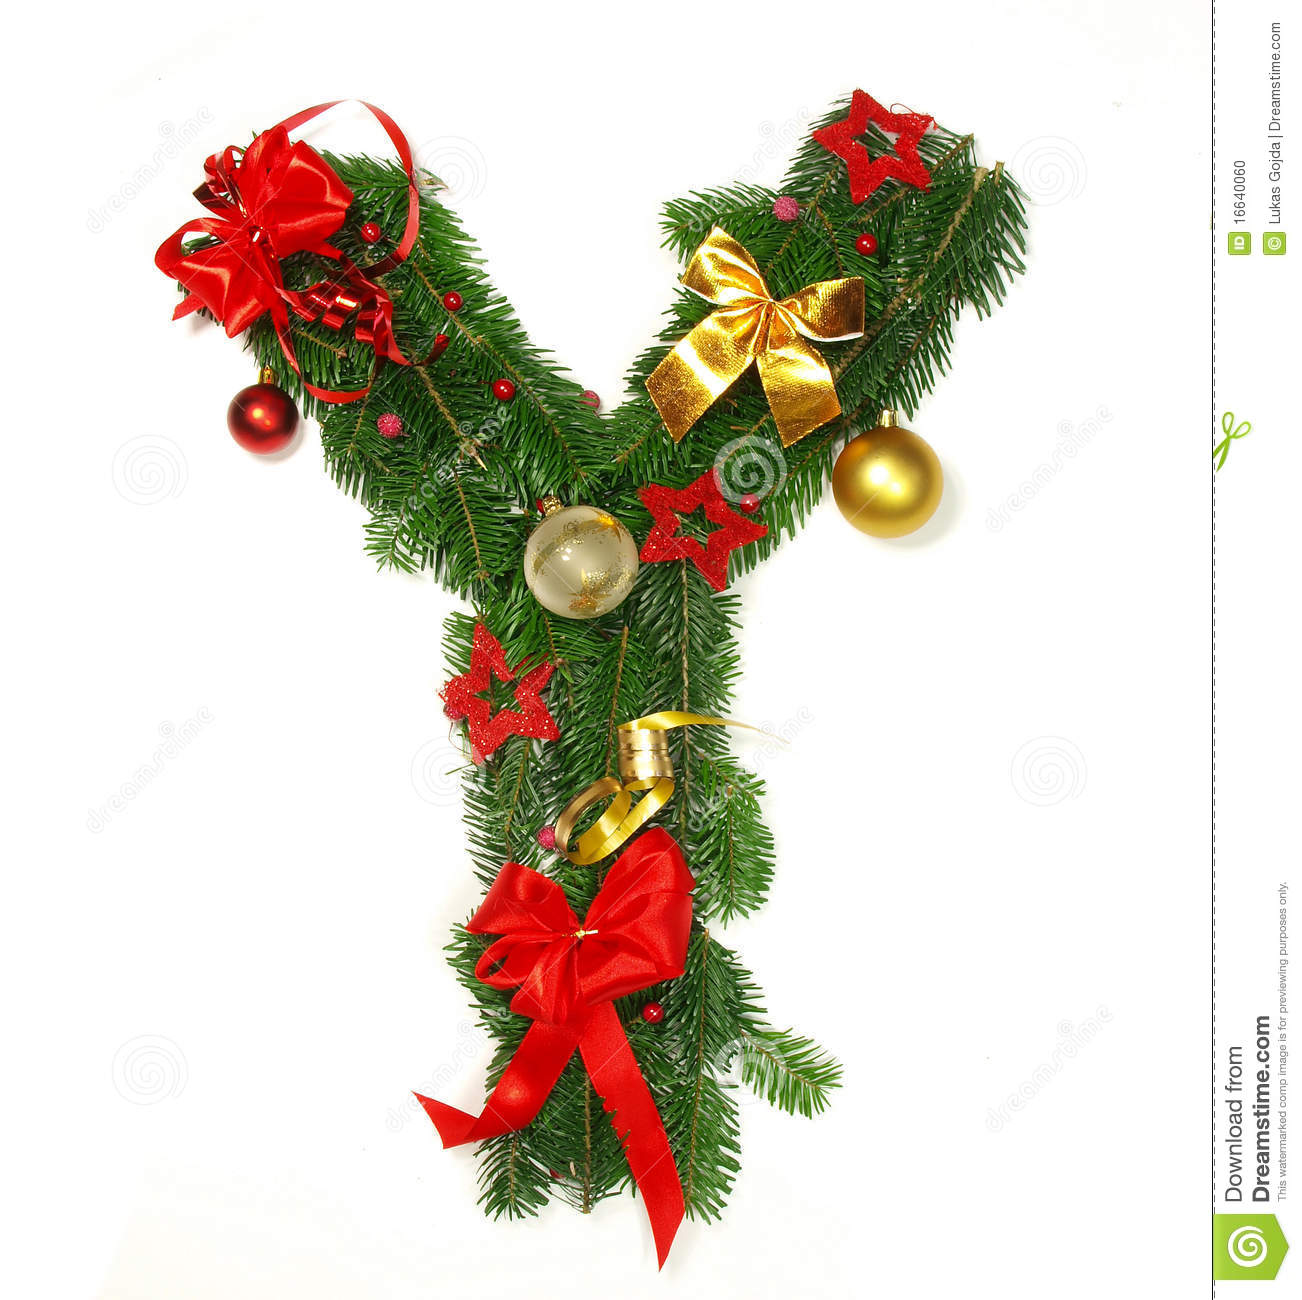 Merry Christmas Letter Y.Christmas Alphabet Letter Y Stock Photo Image Of Botanical